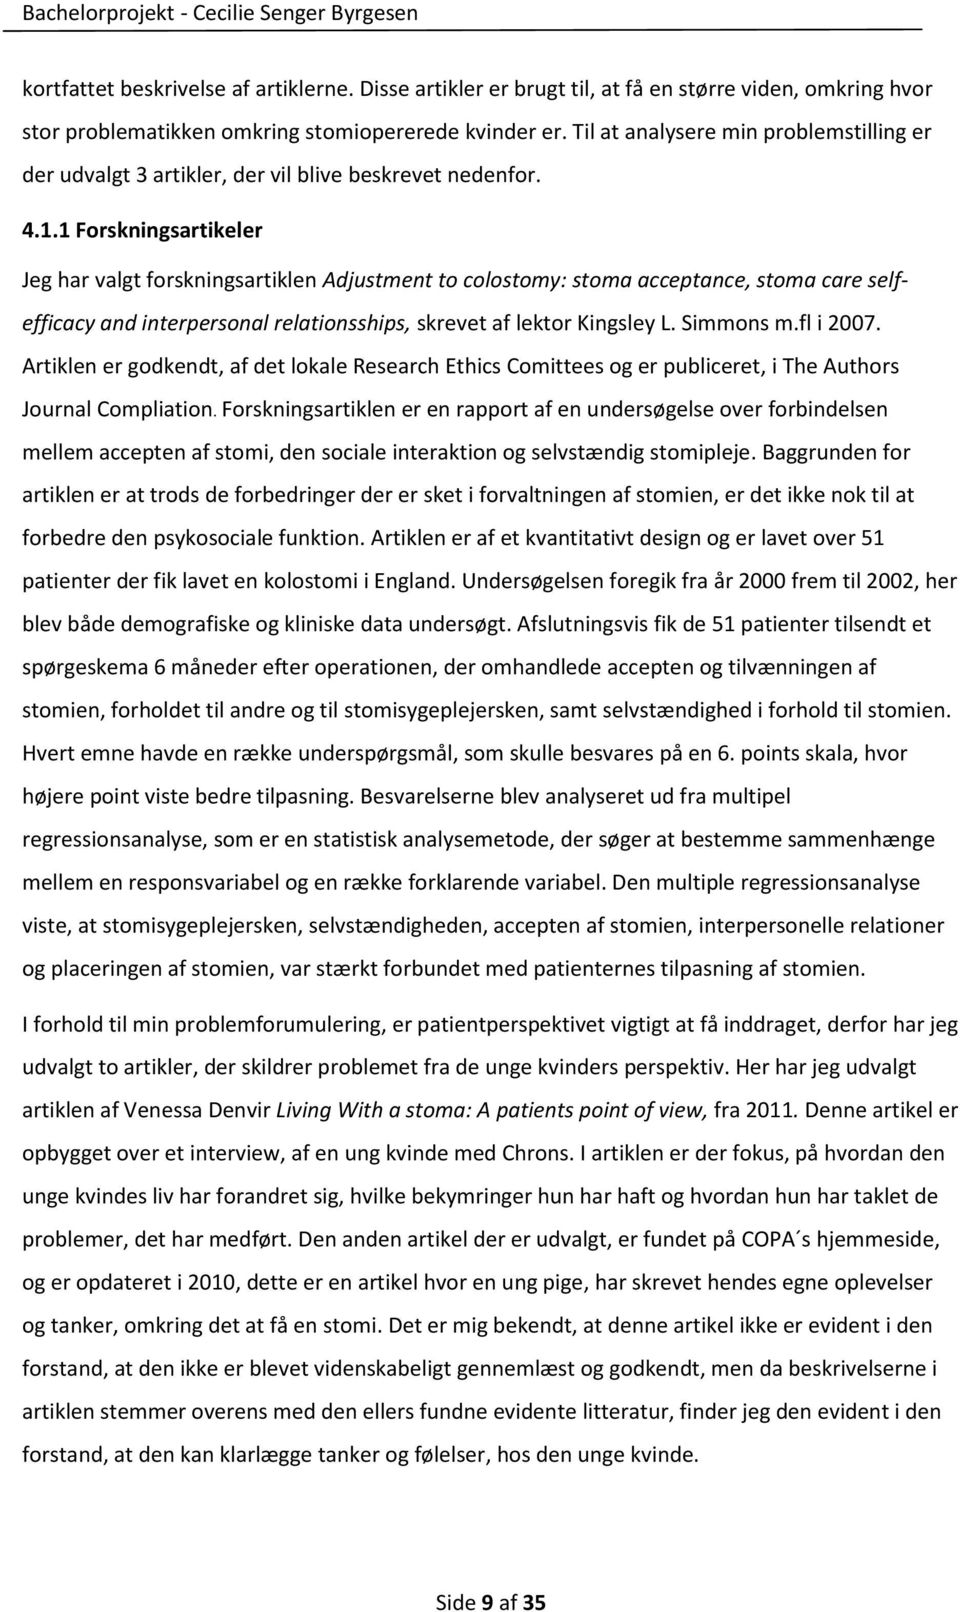 1 Forskningsartikeler Jeg har valgt forskningsartiklen Adjustment to colostomy: stoma acceptance, stoma care selfefficacy and interpersonal relationsships, skrevet af lektor Kingsley L. Simmons m.